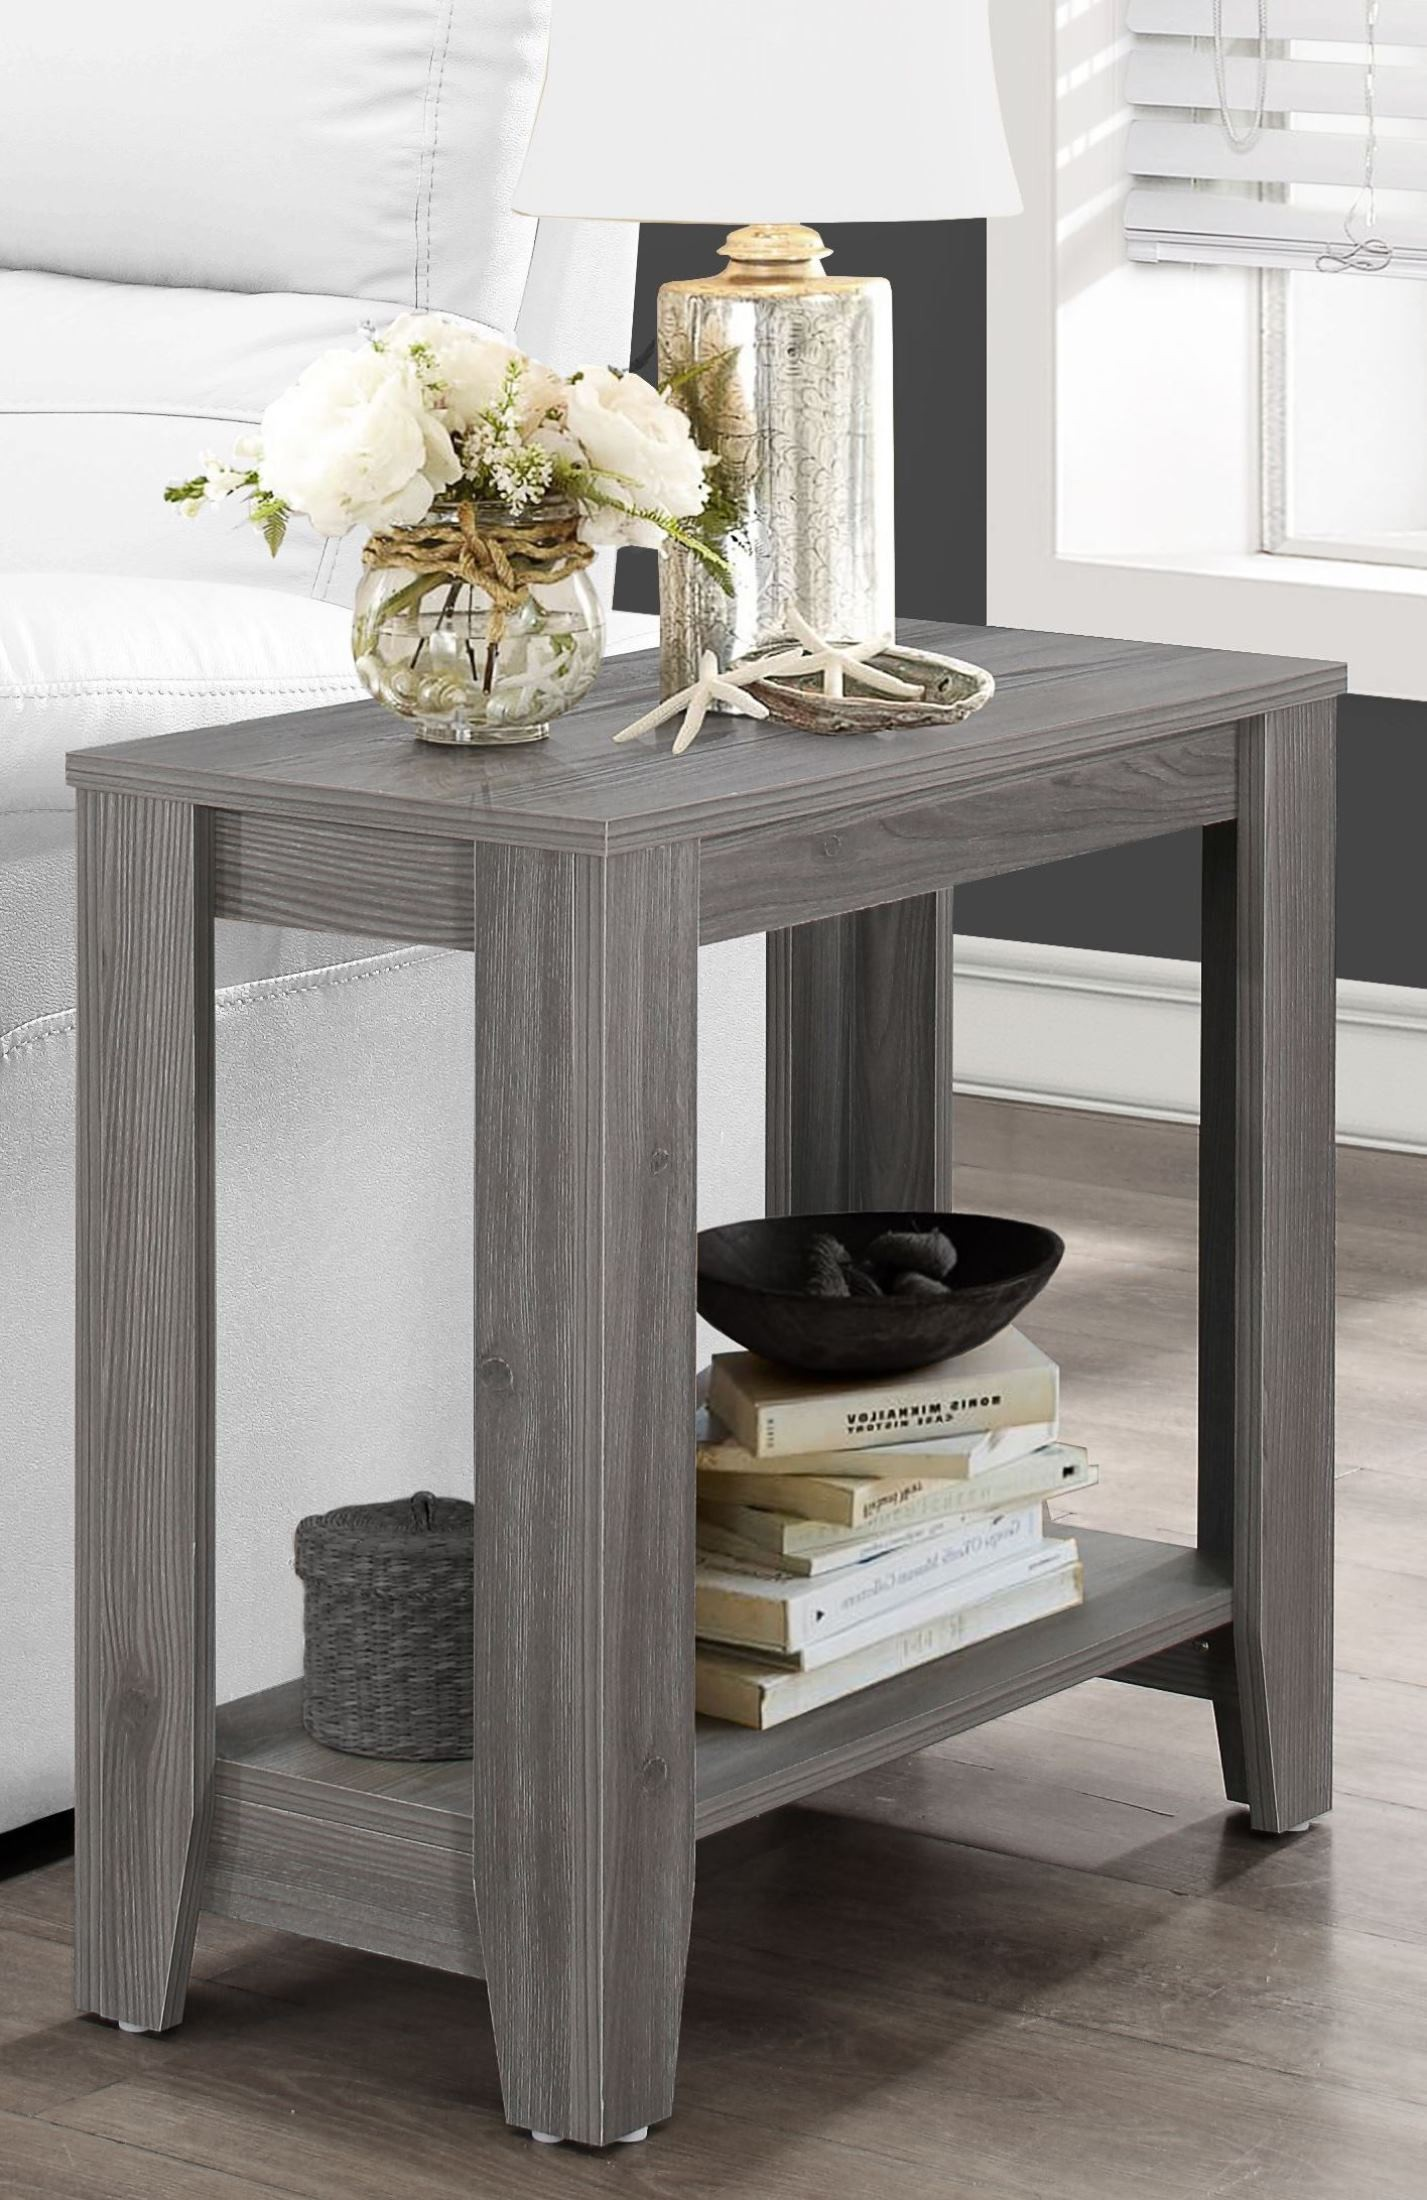 gray accent table from monarch coleman furniture mirrored distressed coffee set ethan allen farm cast aluminum patio side patterned rug kijiji dining pier small kitchen with bench